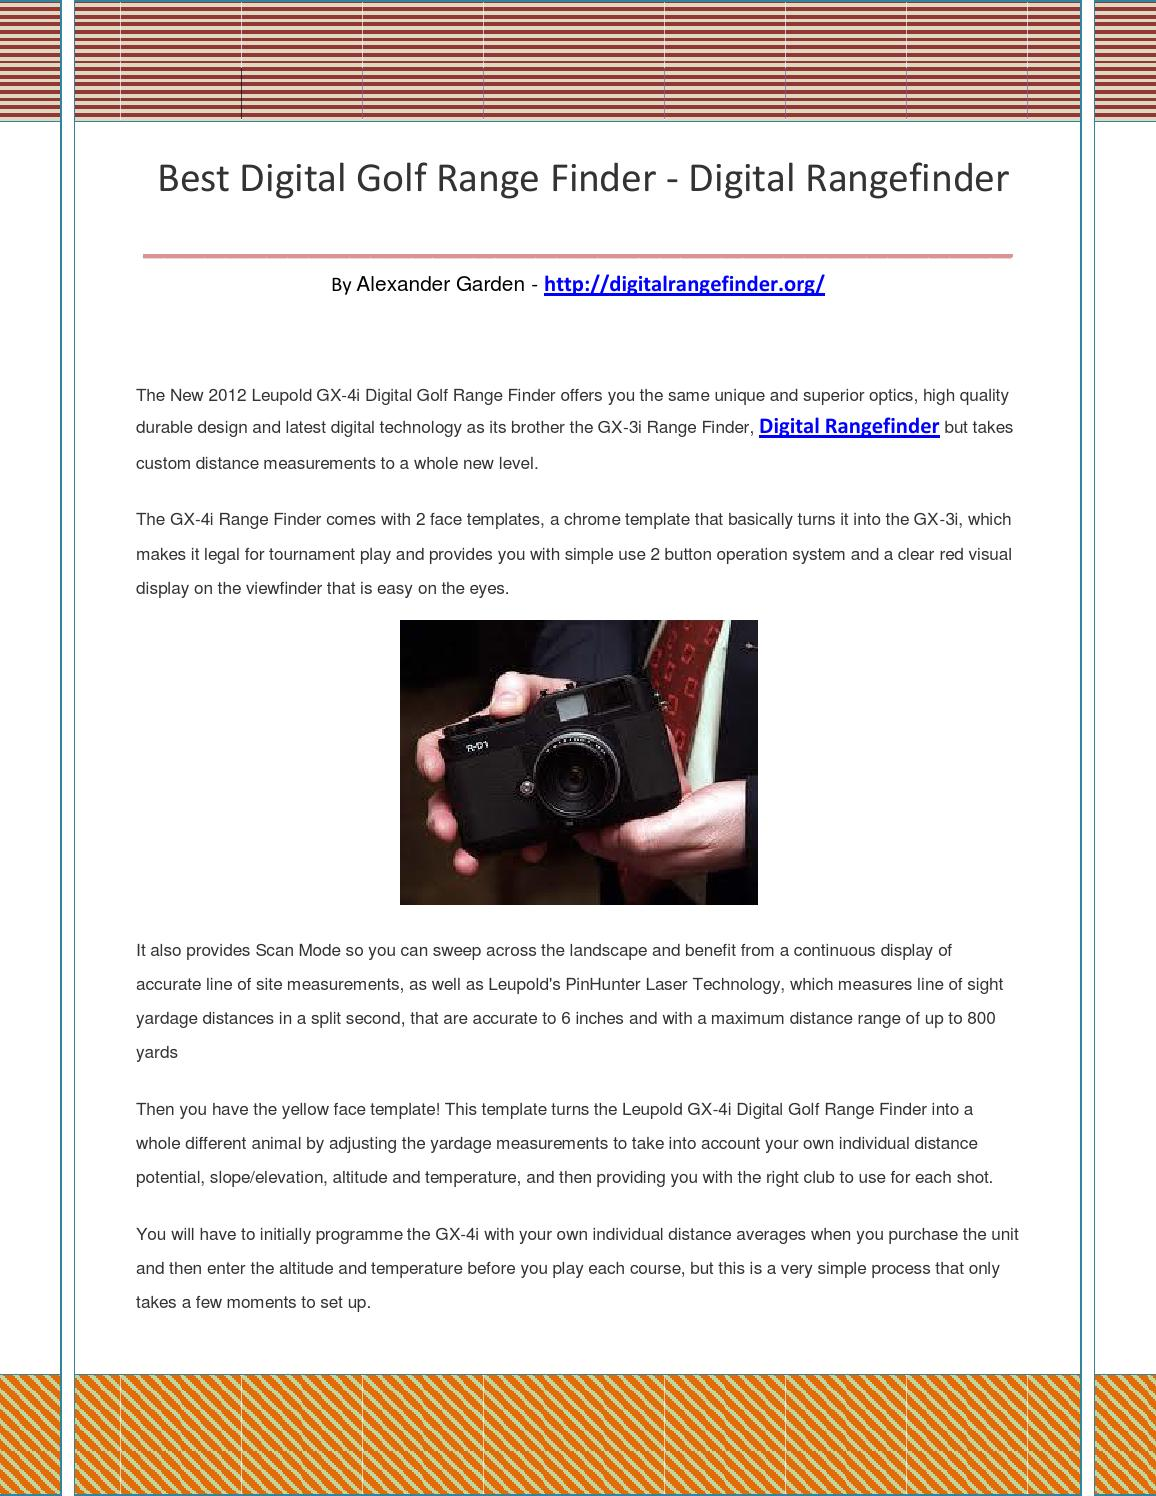 Digital rangefinder by adfsdasd - issuu